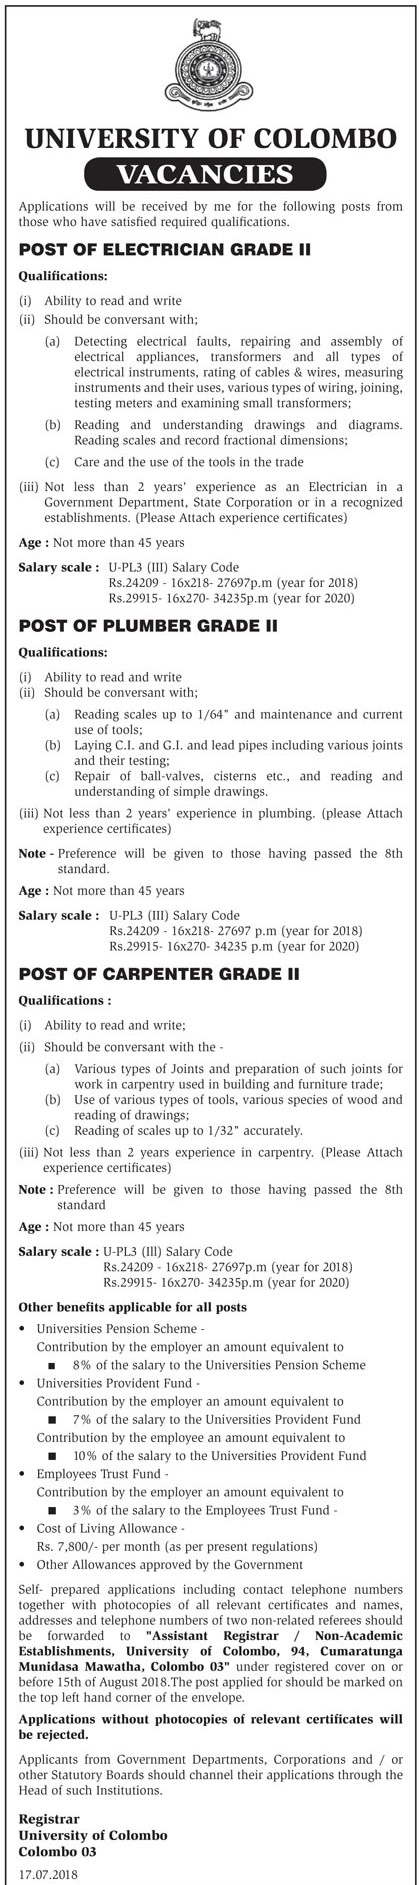 Electrician Plumber Carpenter University Of Colombo Gazette Electrical Wiring Salary Download The Advertisement In English